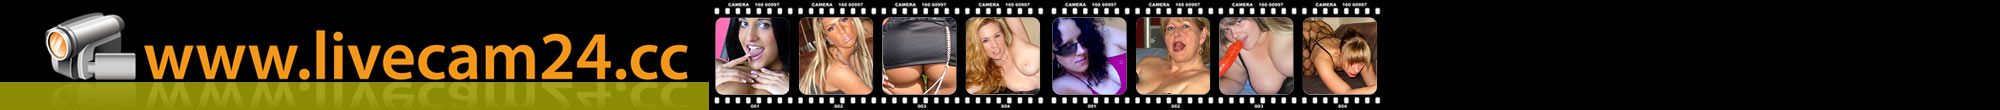 Mya, 36 Jahre, BH: 75 B - brüste 75dd -  - Video Web Cams Live Sex Chat von heissen Girls